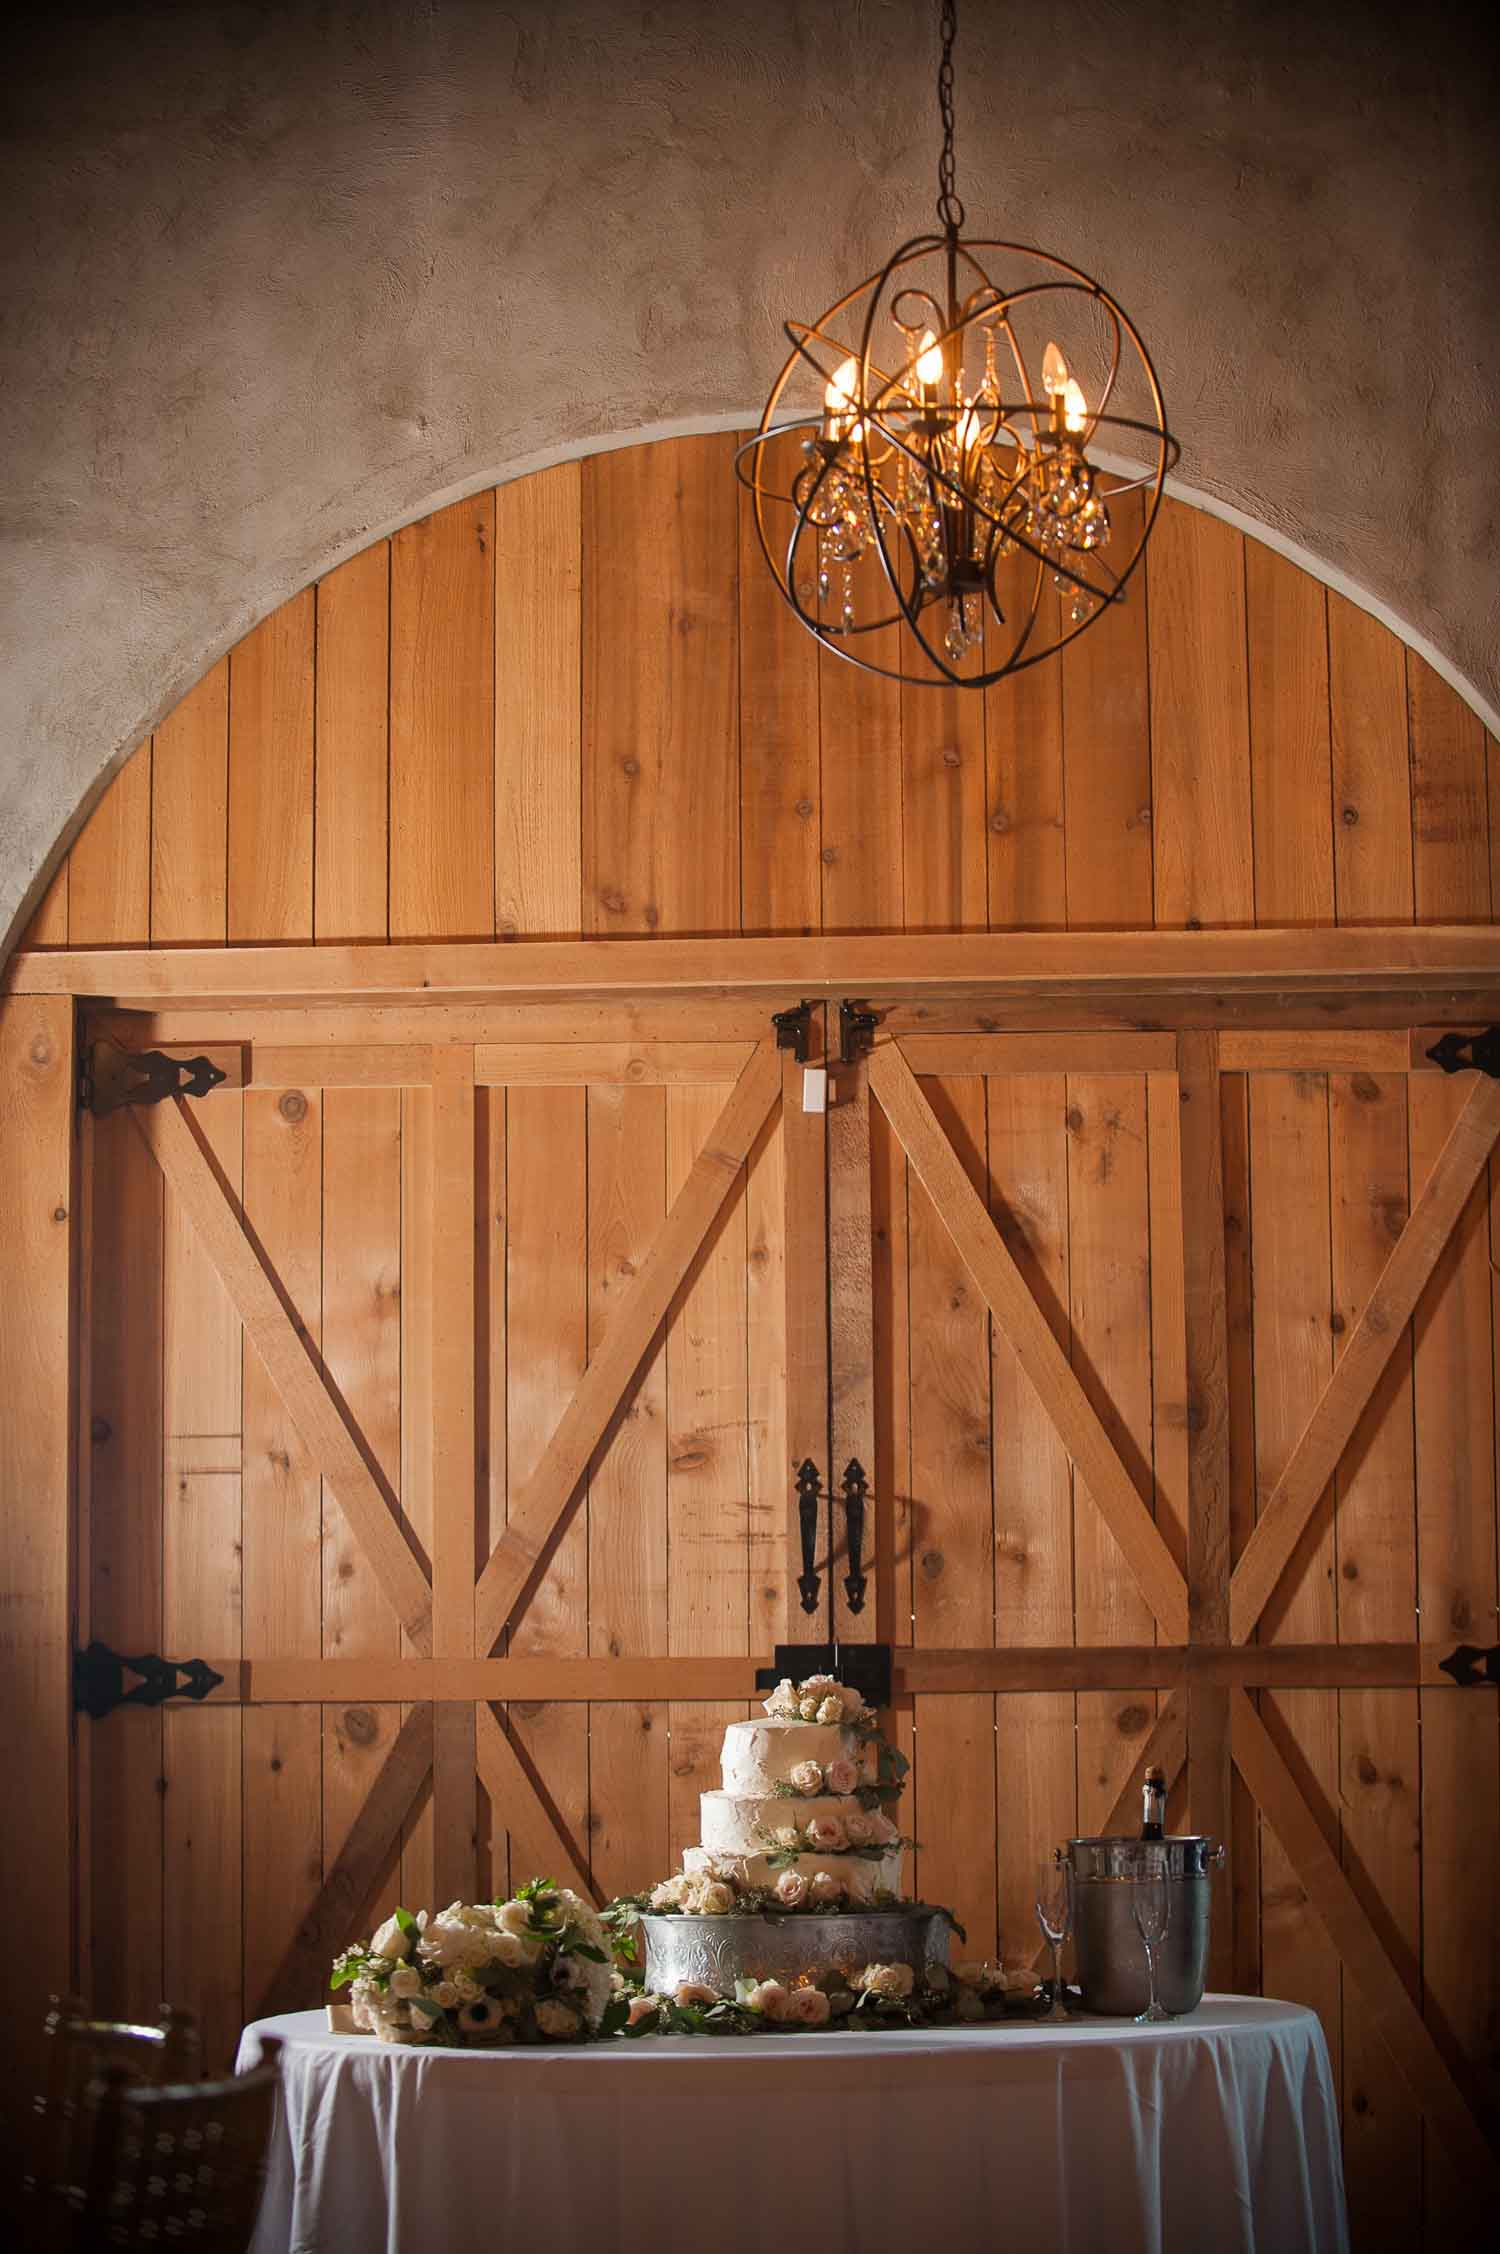 The chandelier at Park Crest adds elegance to the overall setting. Photo:  Jerrod Brown